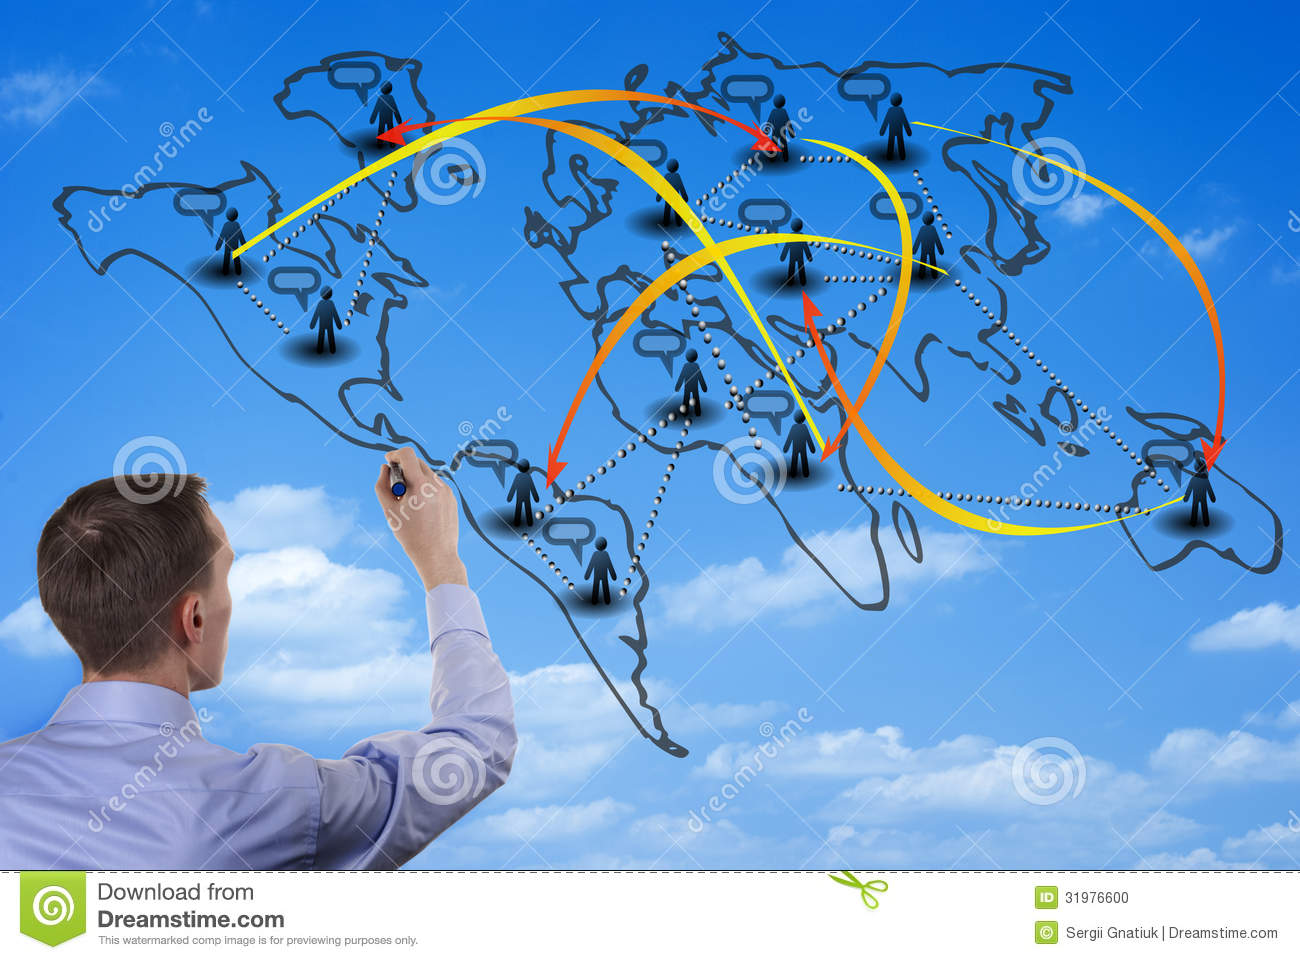 Man drawing on a world map on a glass wall stock photo image of man drawing on a world map on a glass wall gumiabroncs Choice Image